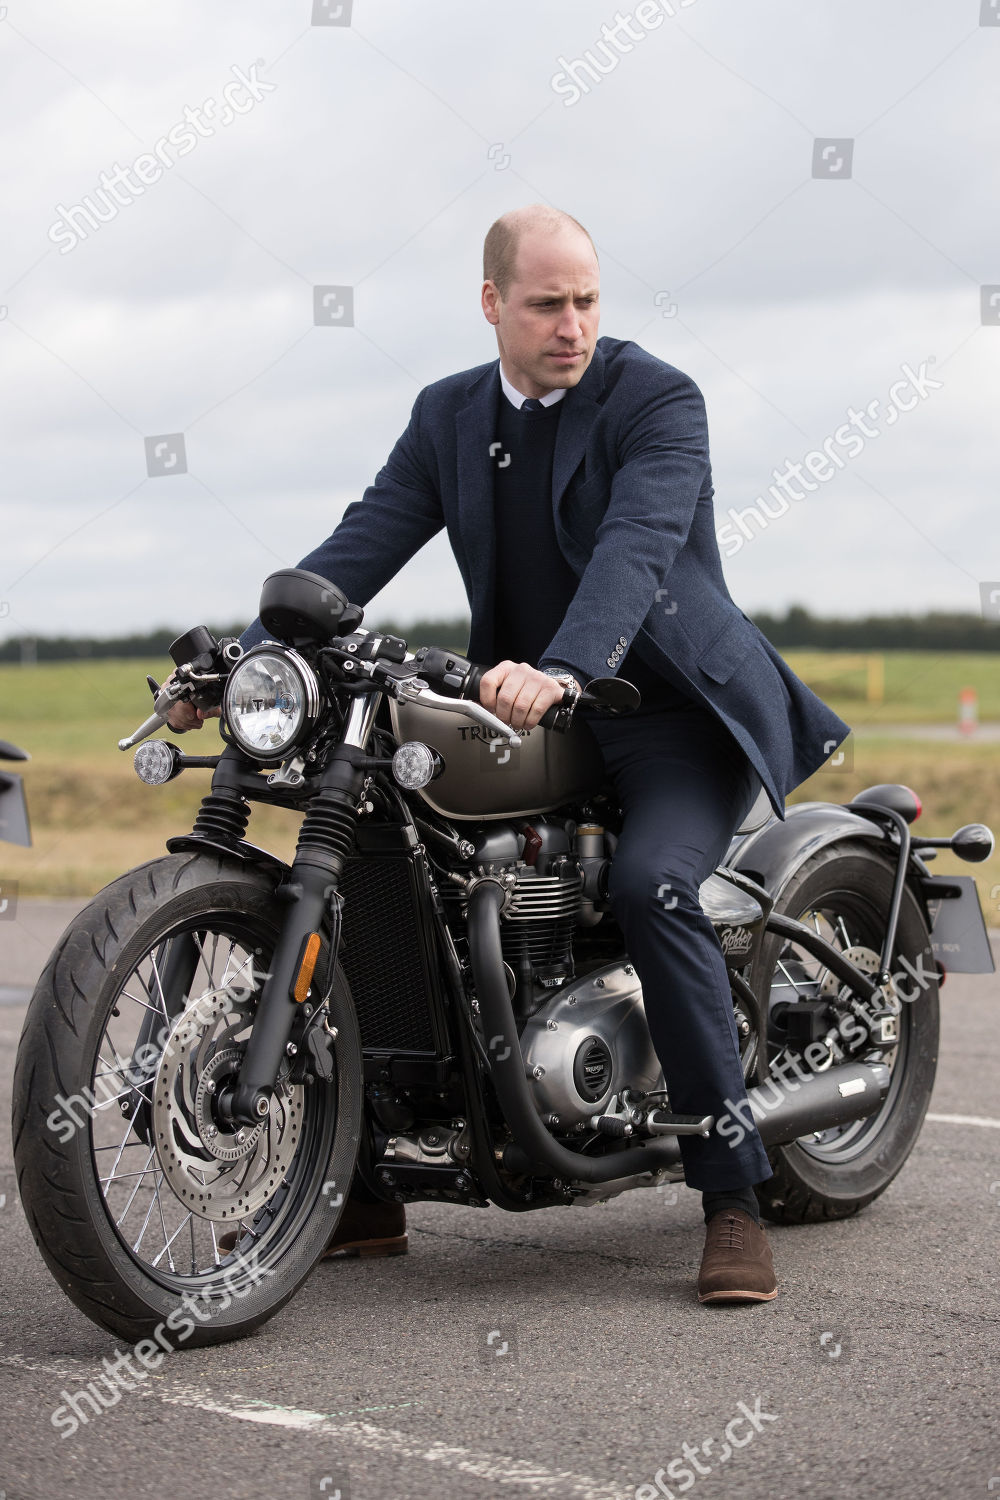 Prince William sits upon Triumph Bobber motorcycle Editorial Stock